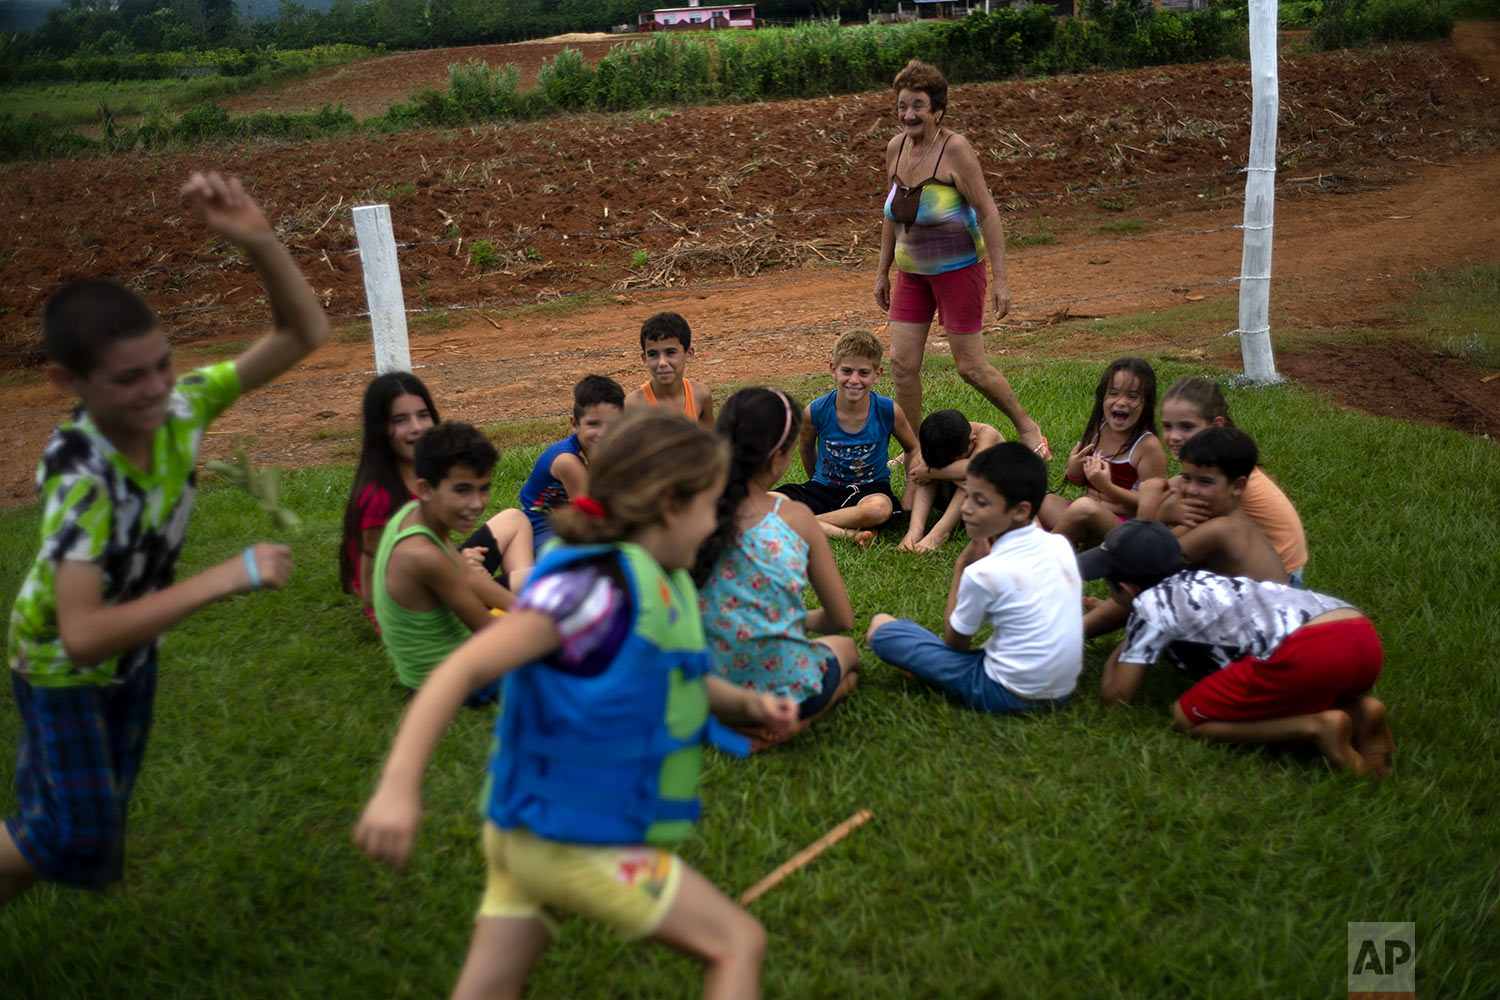 In this Aug. 24, 2019 photo, children play as they wait for a tractor trailer to be converted into a swimming pool in El Infernal neighborhood in San Andres in the province of Pinar del Río, Cuba. (AP Photo/Ramon Espinosa)